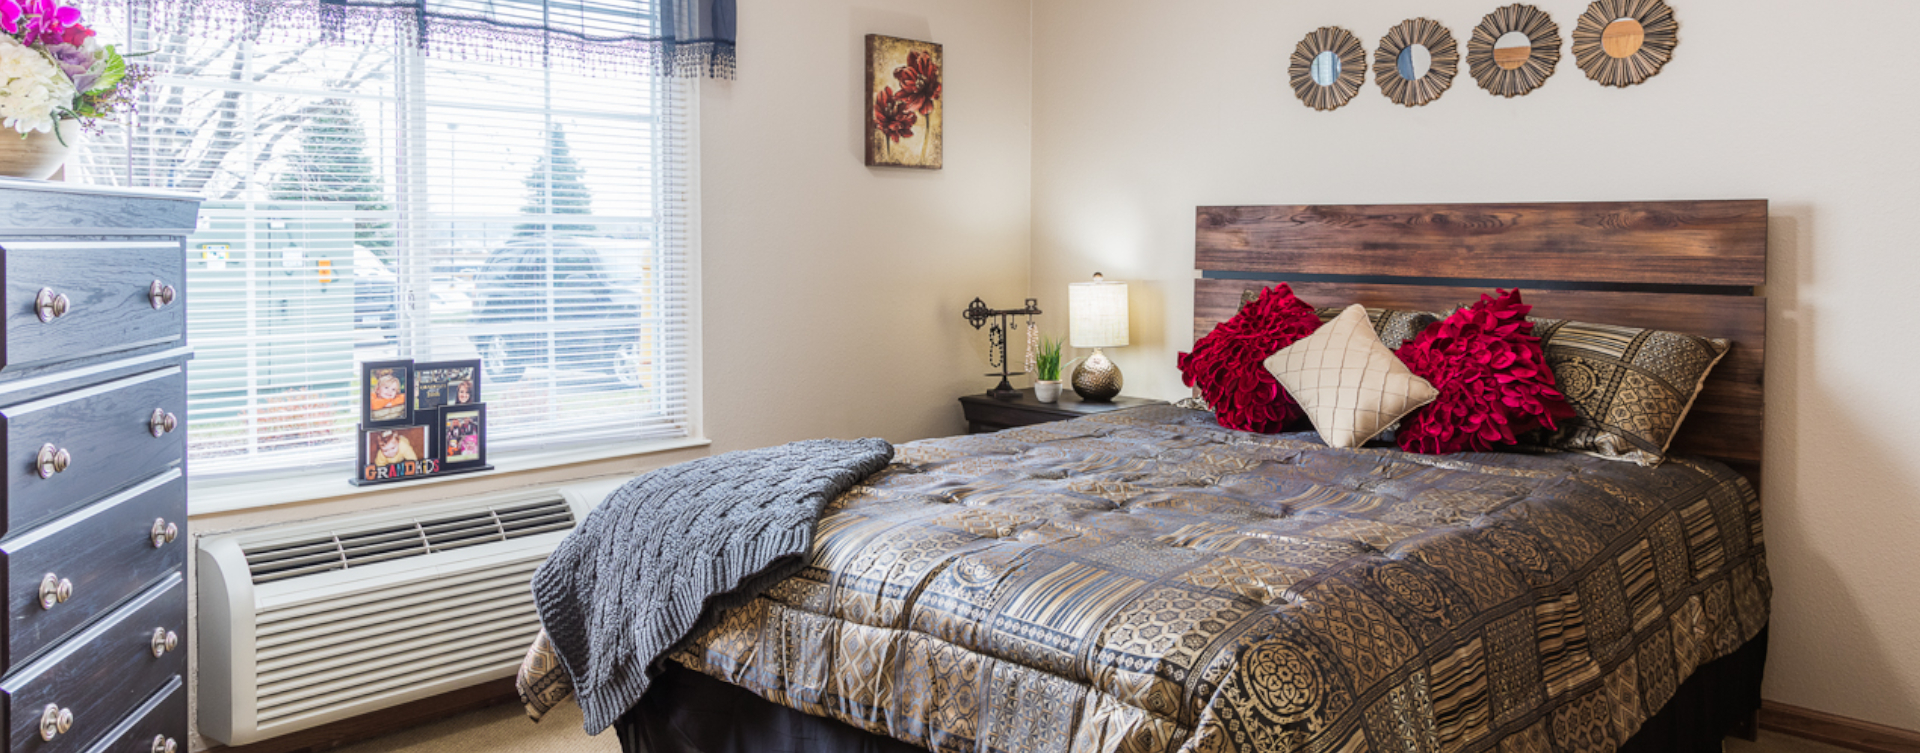 Get a new lease on life with a cozy apartment at Bickford of Sioux City